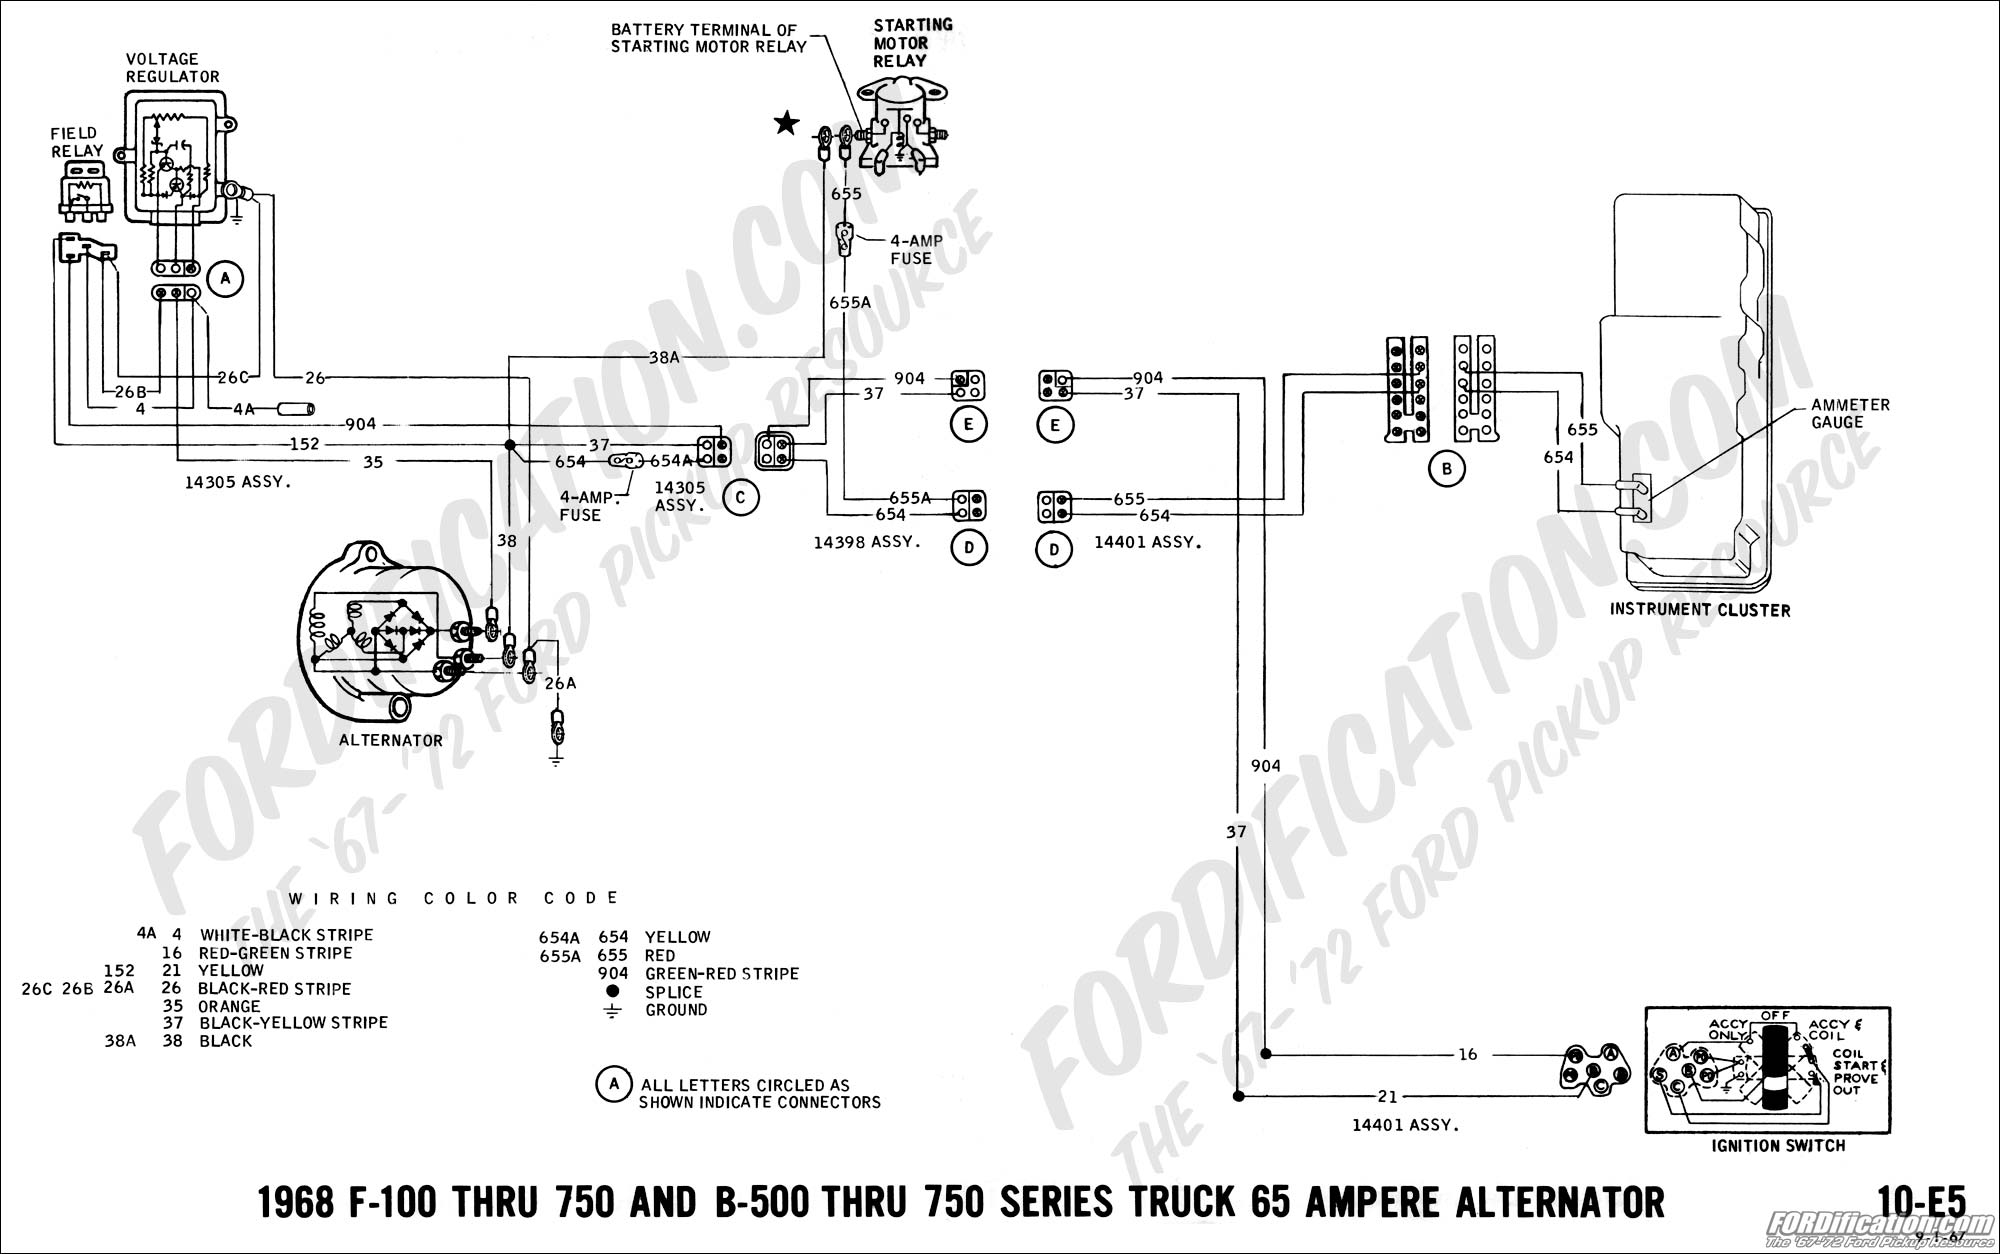 1994 E350 Fuse Diagram Wiring Diagrams Scematic Together With Fuel System On Of Maruti World 2008